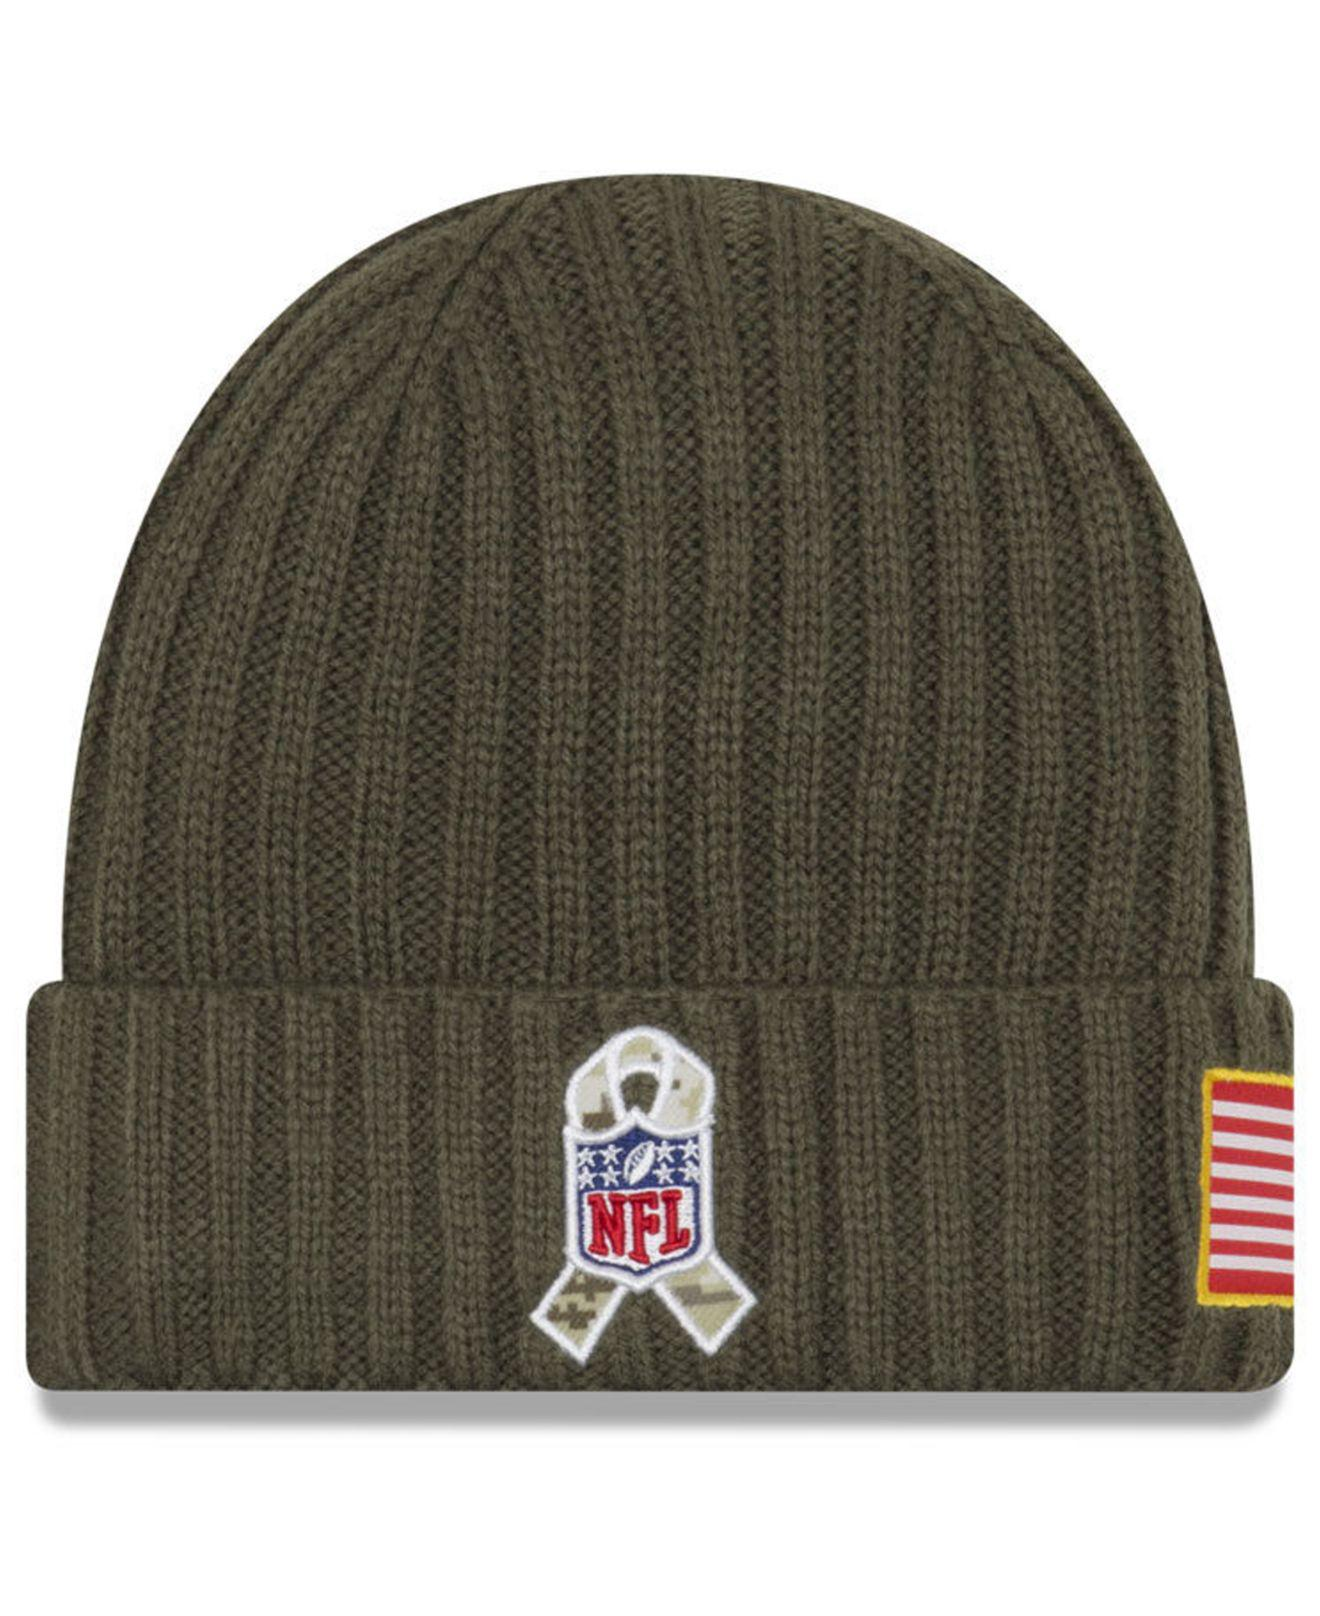 fe4f7bd9bbe Lyst - Ktz Salute To Service Cuff Knit Hat in Green for Men